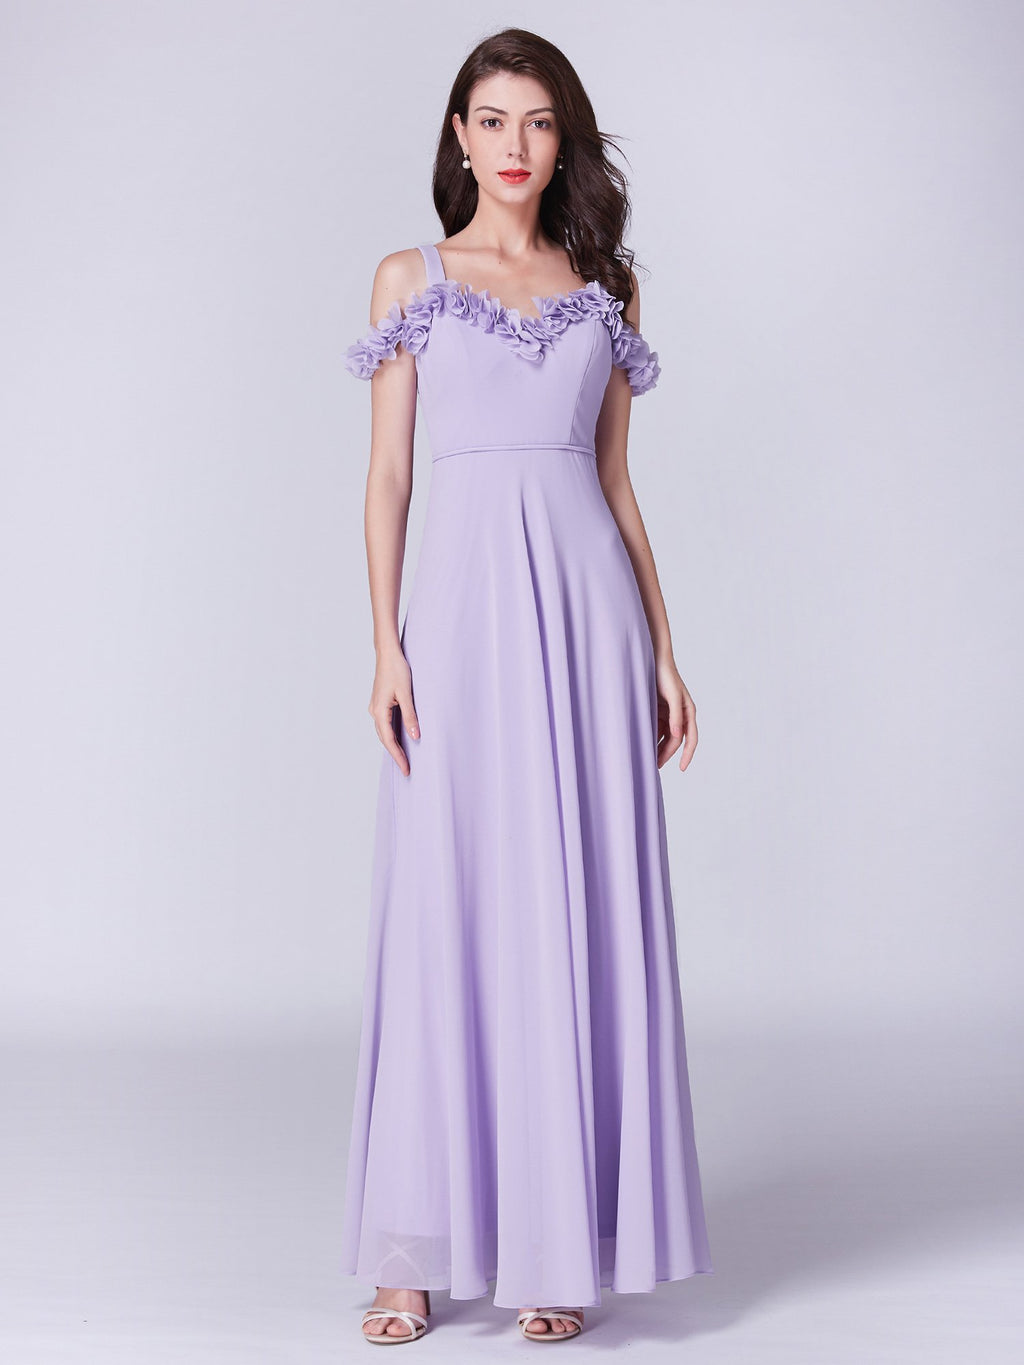 Romantic Neckline Lovely Gown